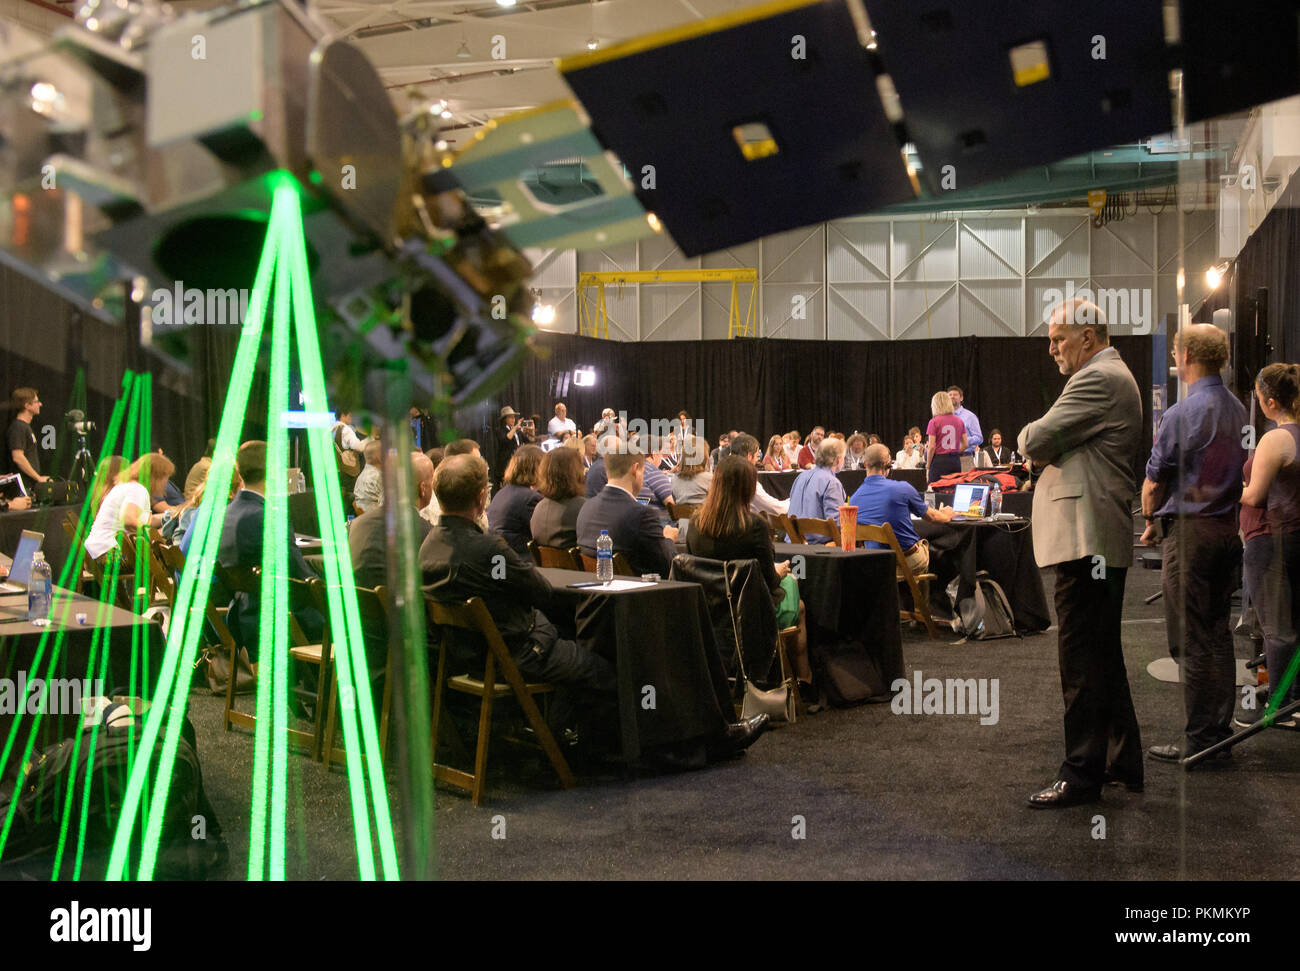 Vandenberg Air Force Base, California, USA. 13th Sep, 2018. Prelaunch briefing for the NASA Ice, Cloud and land Elevation Satellite-2 (ICESat-2), Thursday, Sept. 13, 2018, at Vandenberg Air Force Base in California. The ICESat-2 mission will measure the changing height of Earth's ice. Photo Credit: (NASA/Bill Ingalls) NASA via globallookpress.com Credit: Nasa/Russian Look/ZUMA Wire/Alamy Live News - Stock Image